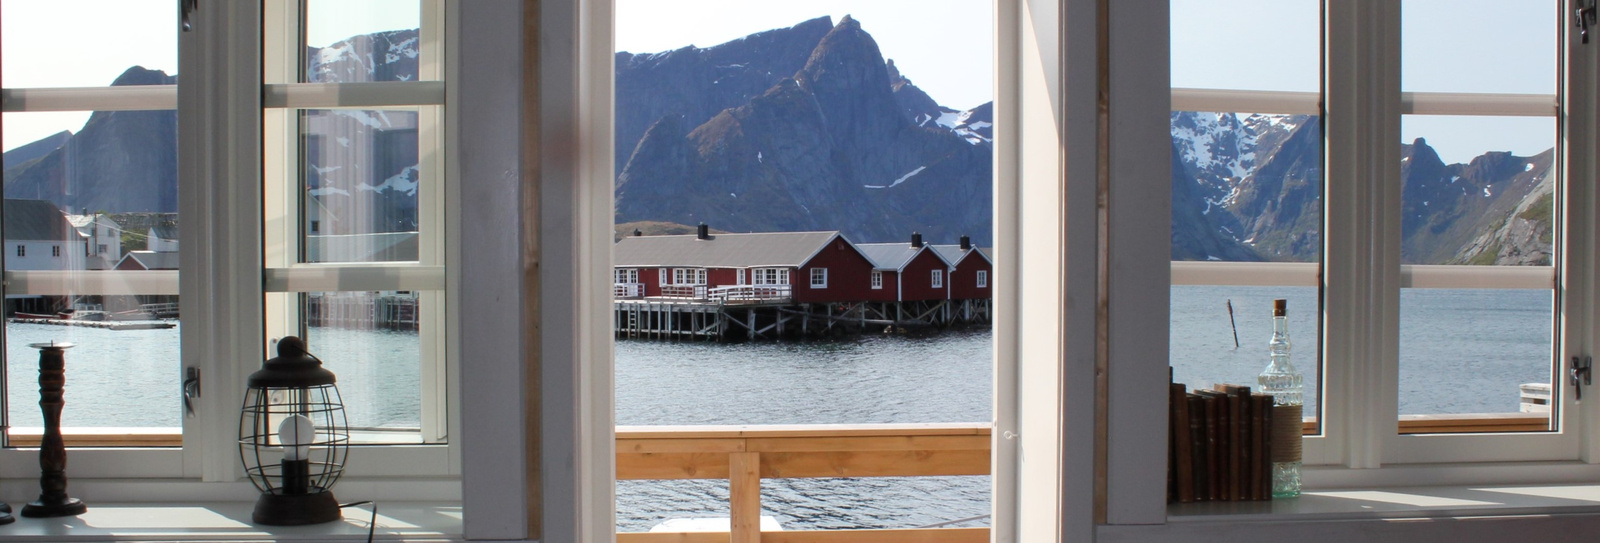 View from liviongroom over Hamnøy harbour and Reinefjord